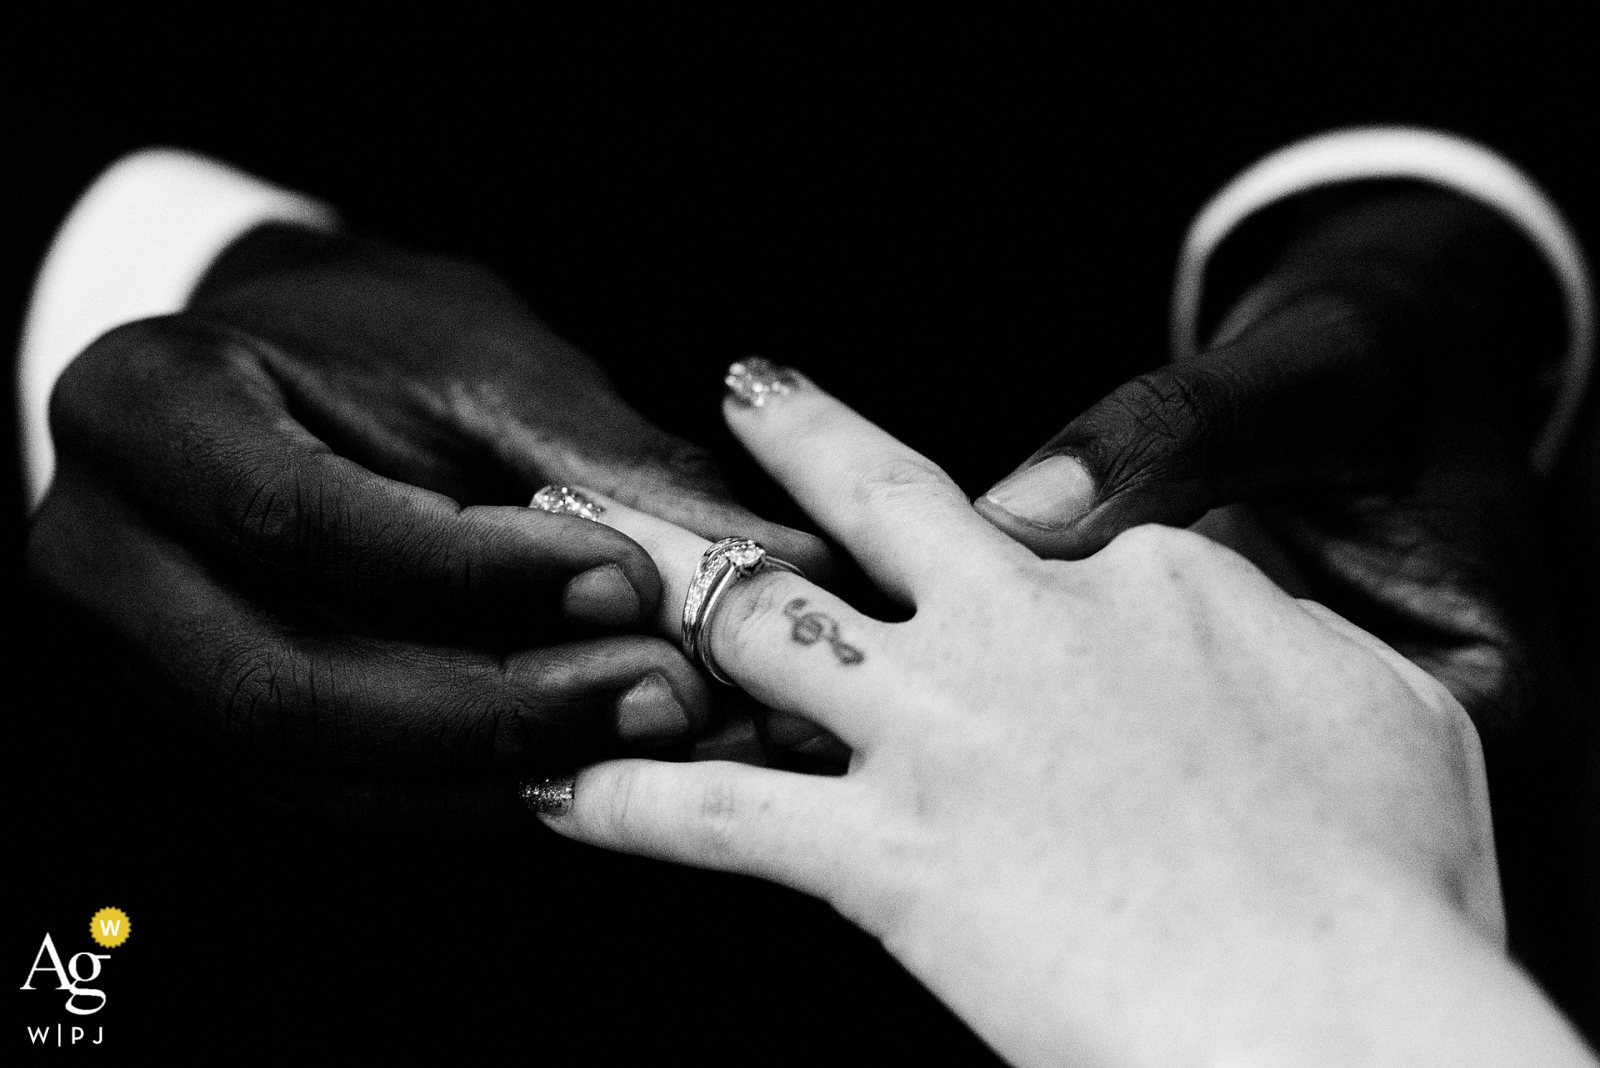 Wedding photography from a Church in Croydon, UK showing the Exchange of the rings